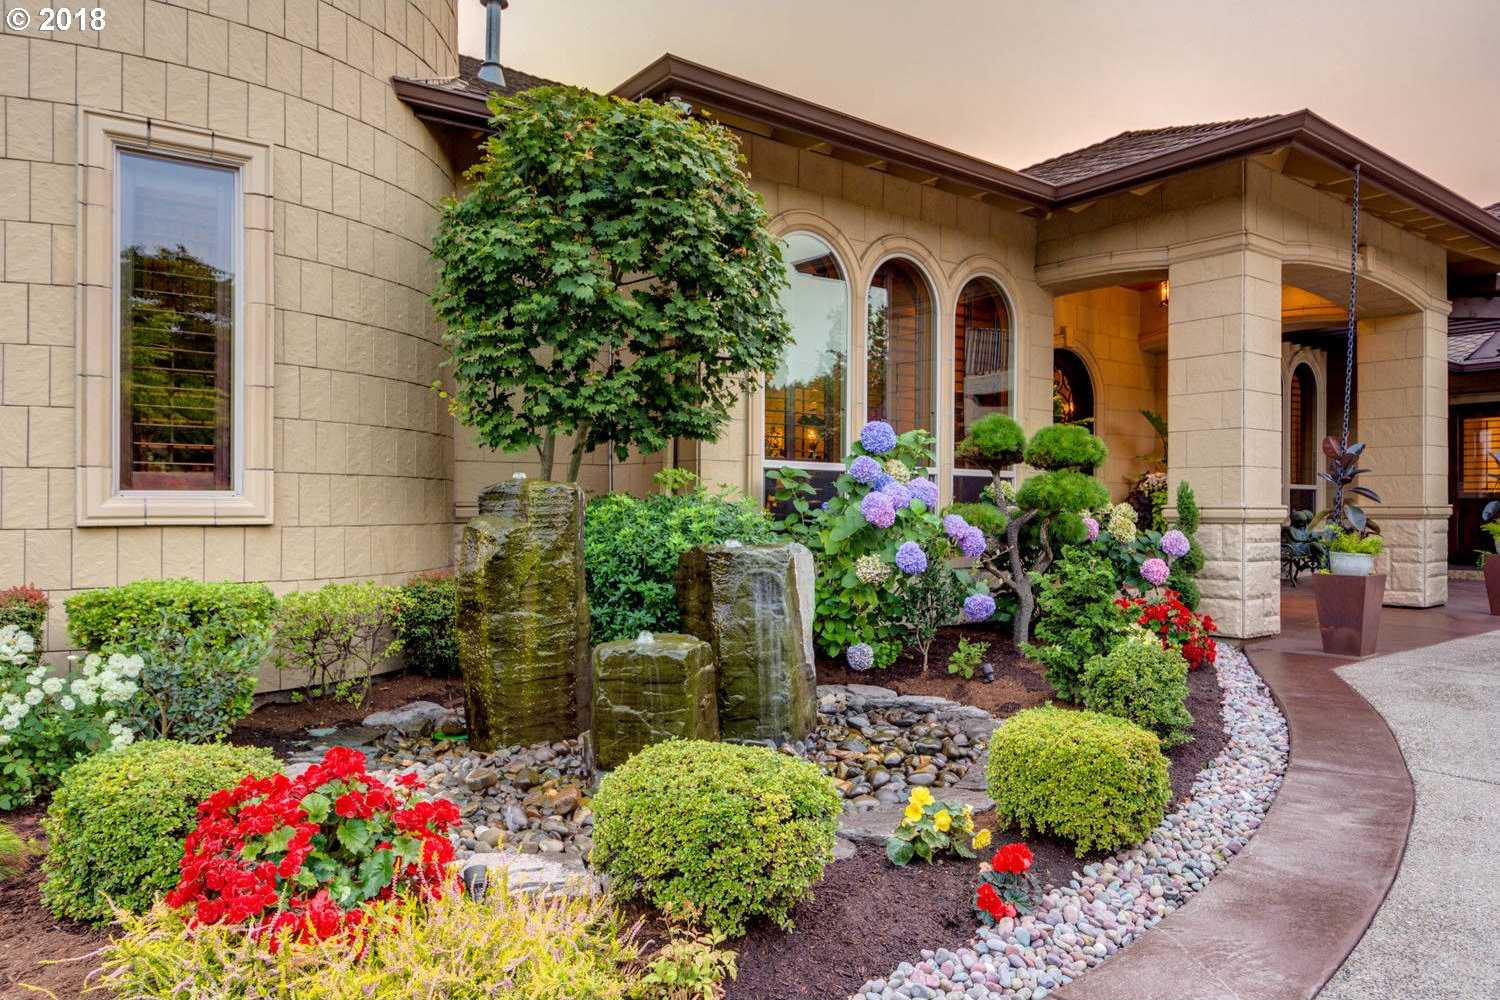 $1,625,000 - 5Br/5Ba -  for Sale in Corrine Heights, Beaverton